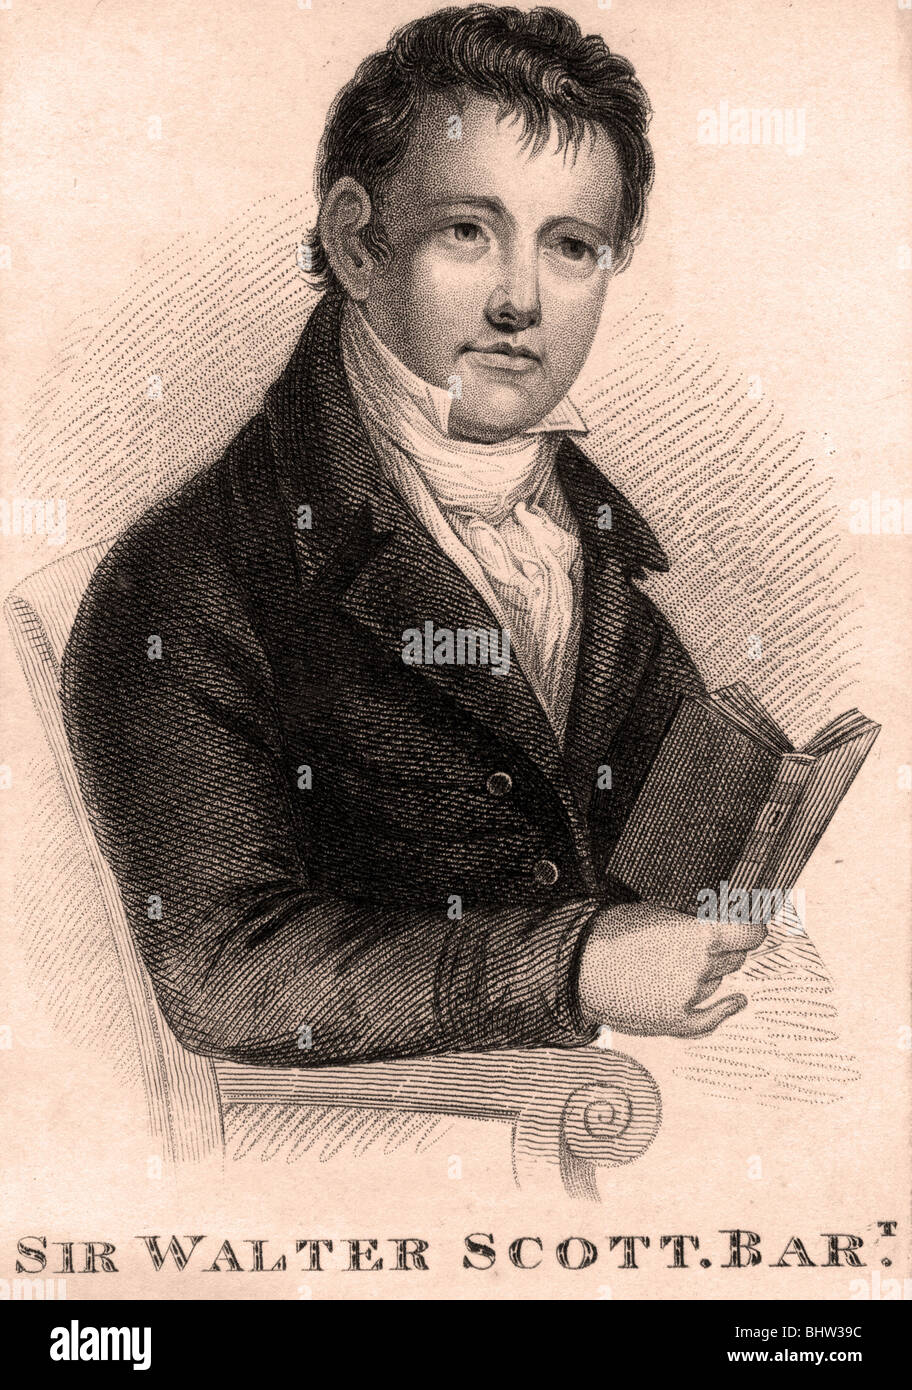 SIR WALTER SCOTT - Scottish novelist and poet (1771-1832) - Stock Image